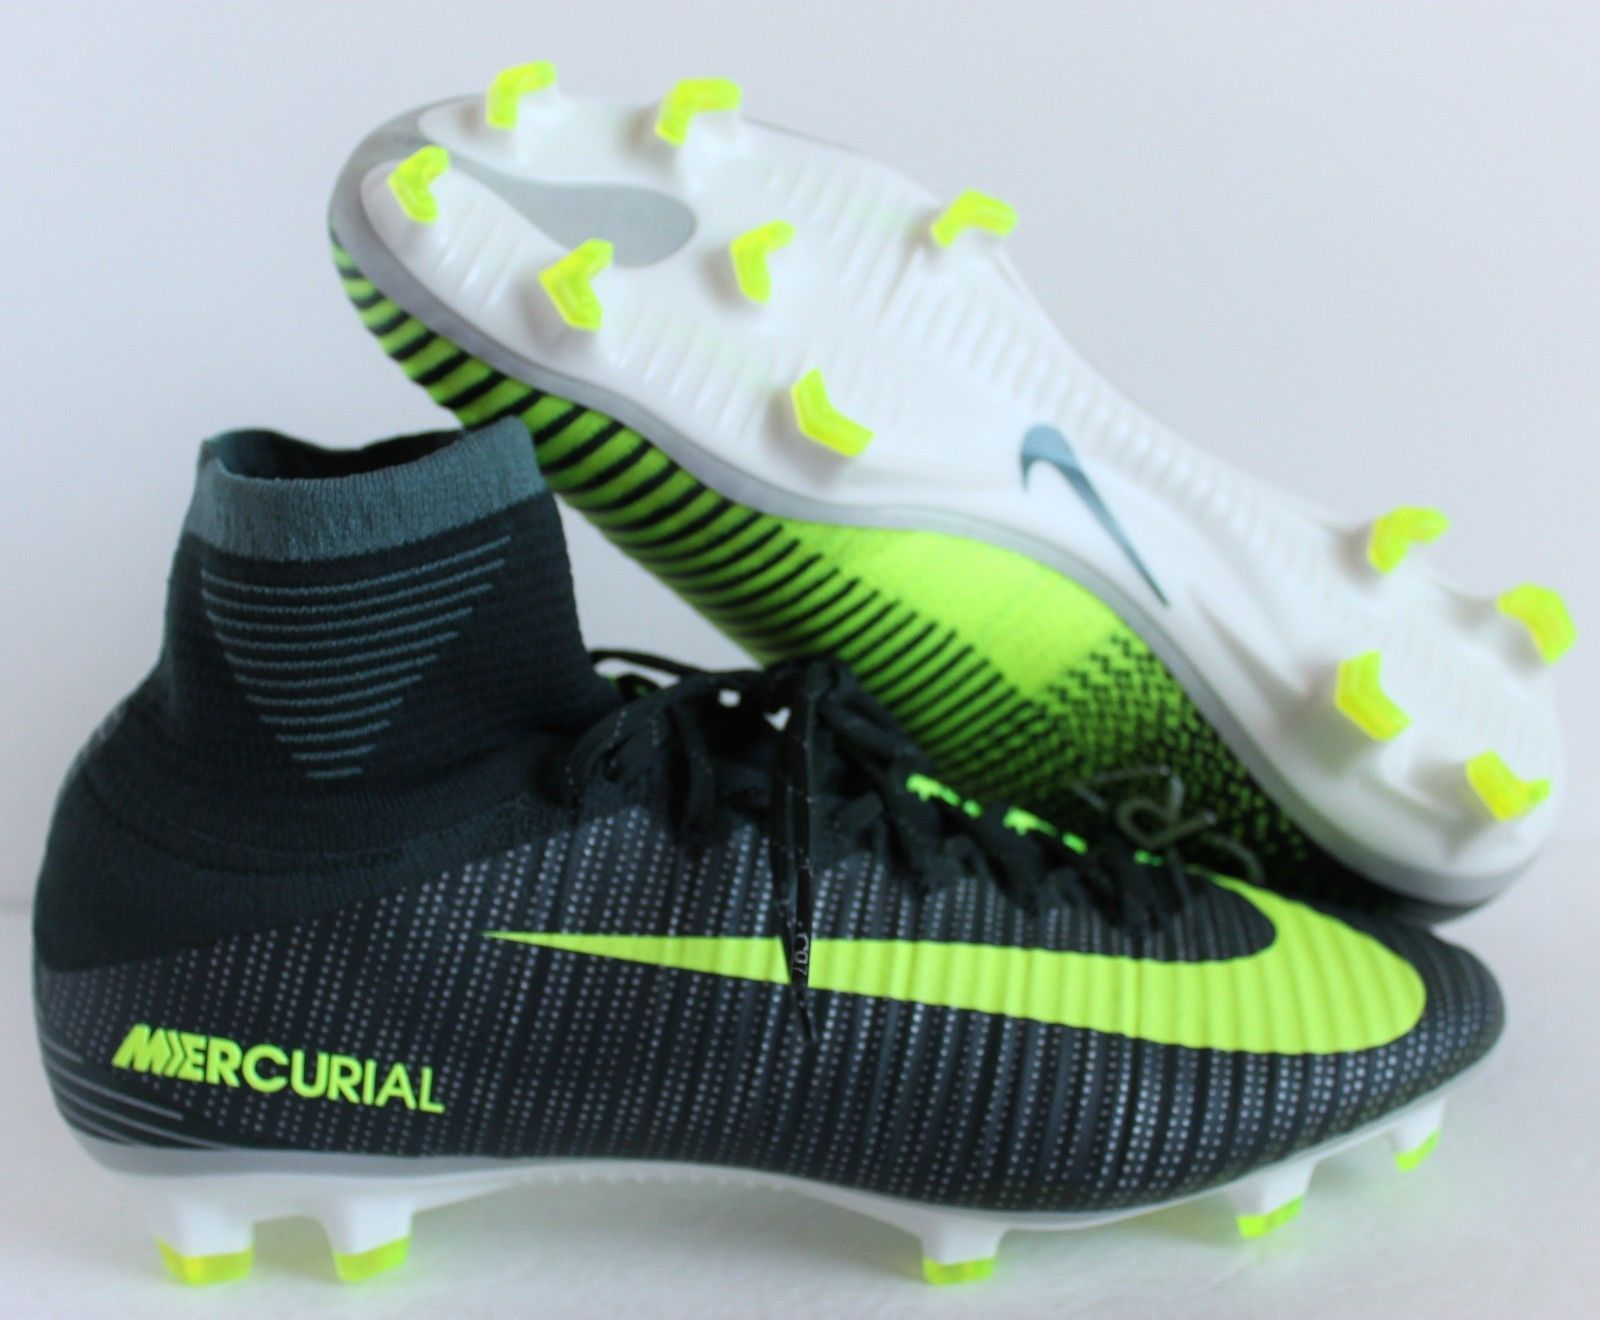 NIKE MERCURIAL SUPERFLY V CR7 FG SEAWEED-VOLT-HASTA-WHITE SZ 9.5 [852511-376]